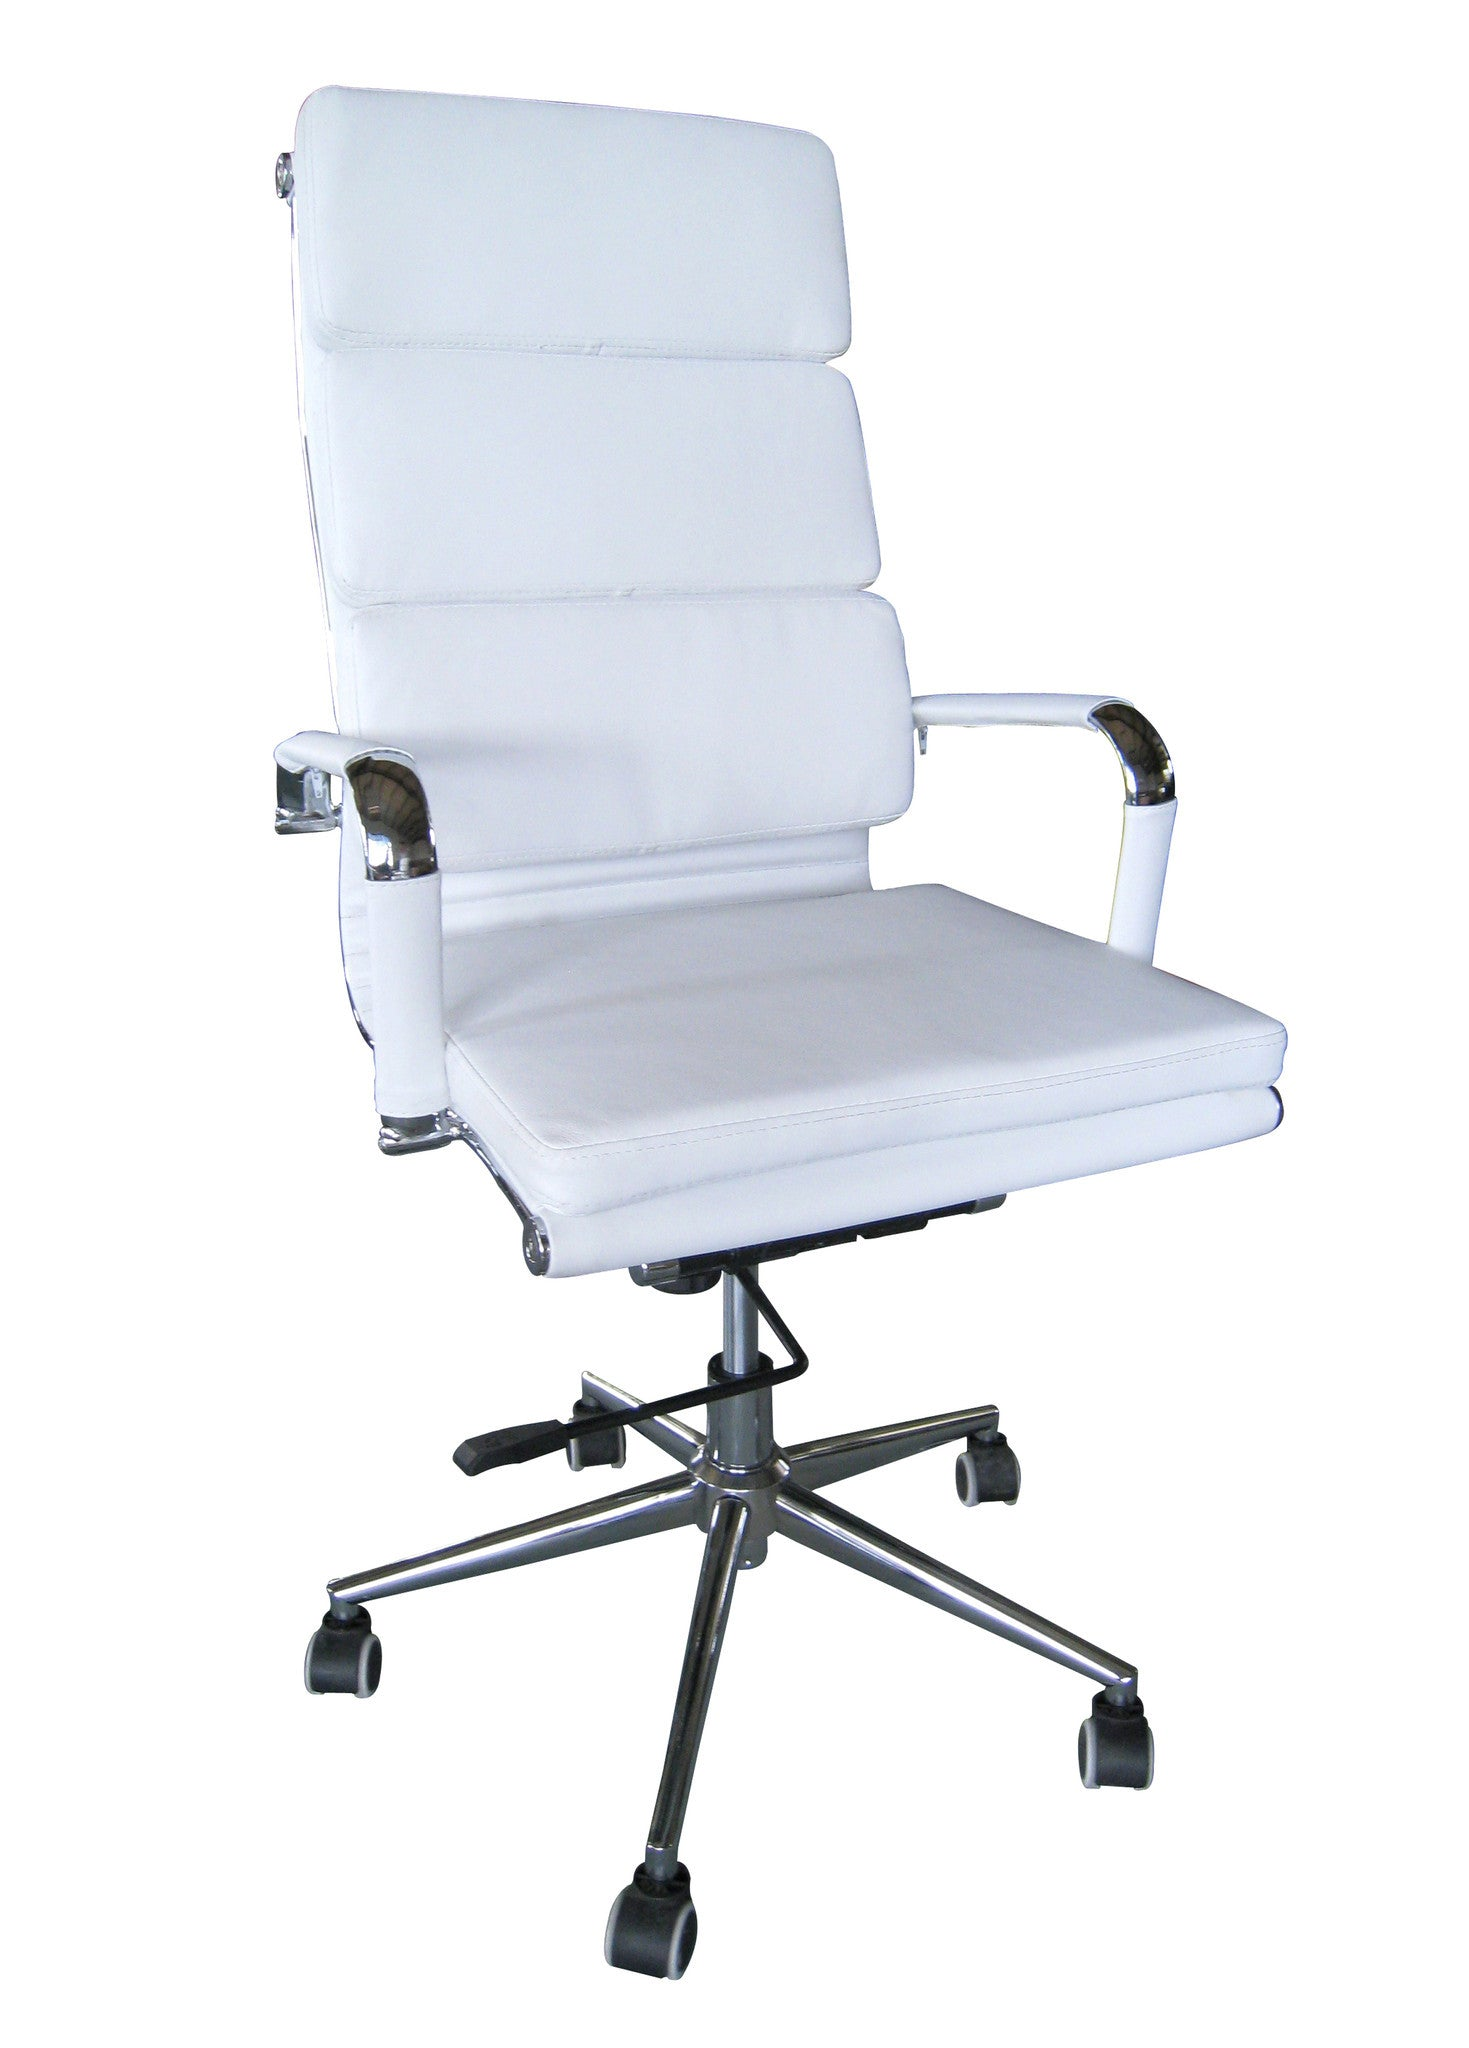 Incredible Eames Replica White Pu Leather High Back Cusion Office Chair Dailytribune Chair Design For Home Dailytribuneorg